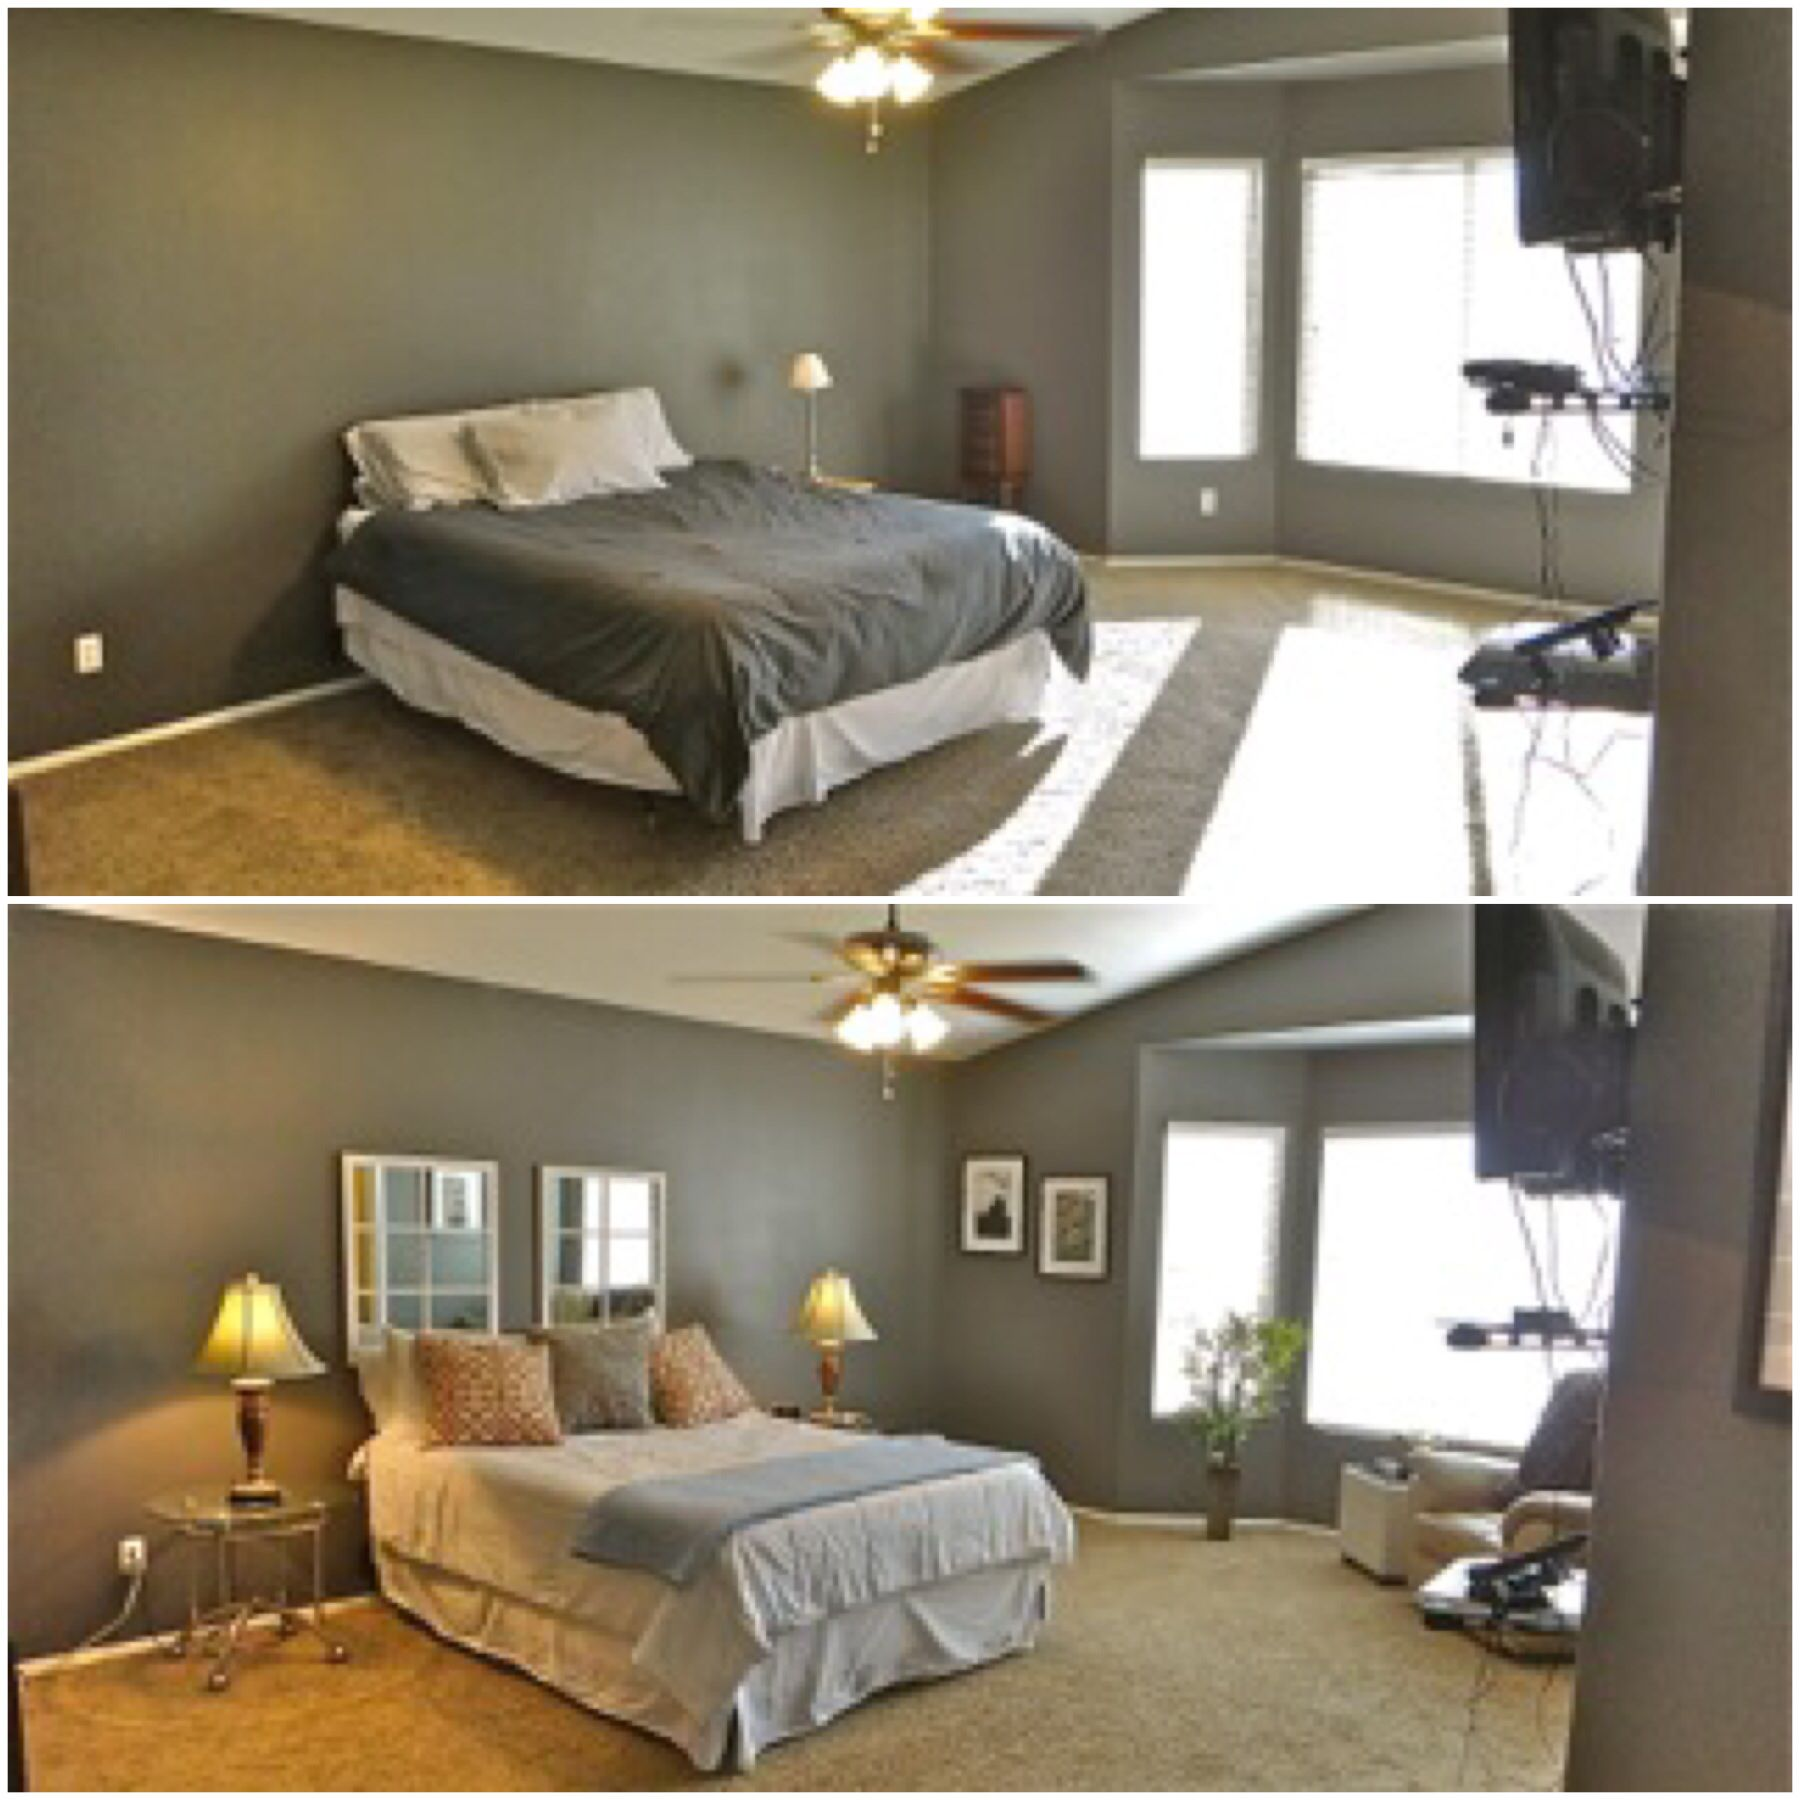 Before and After pictures of a staged master bedroom.